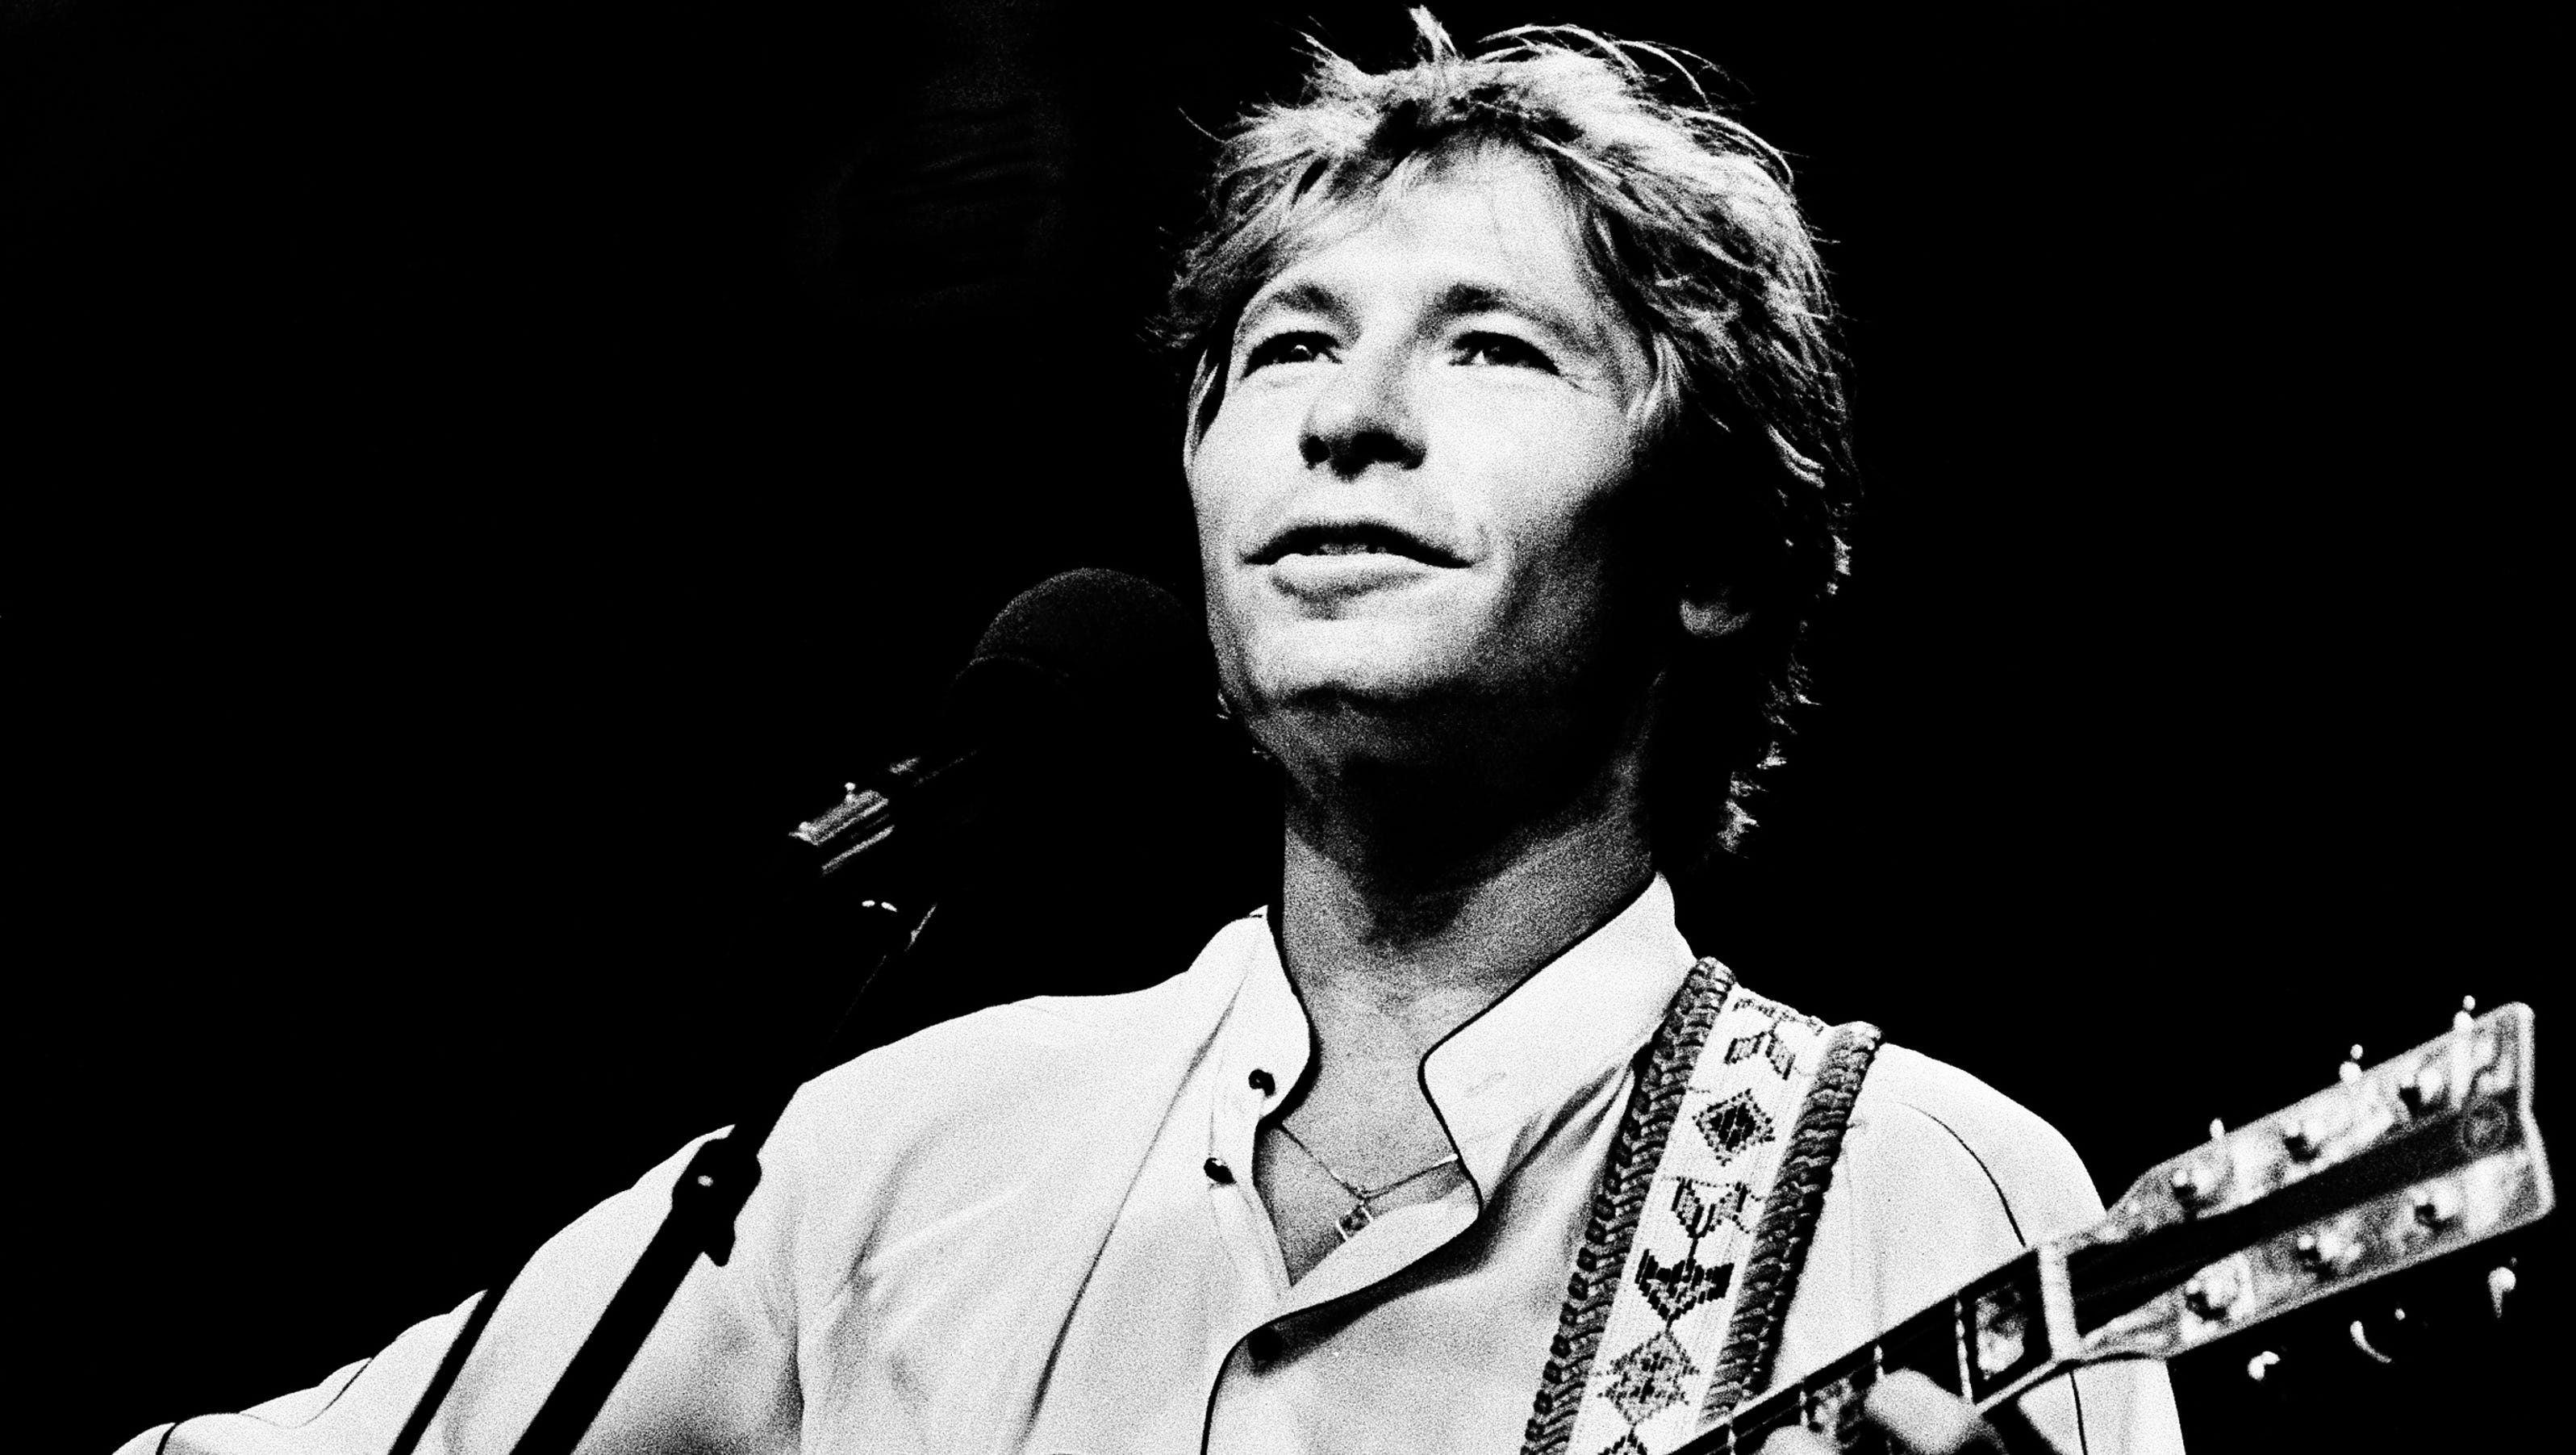 Premiere: John Denver's 'Rhymes and Reasons' demo